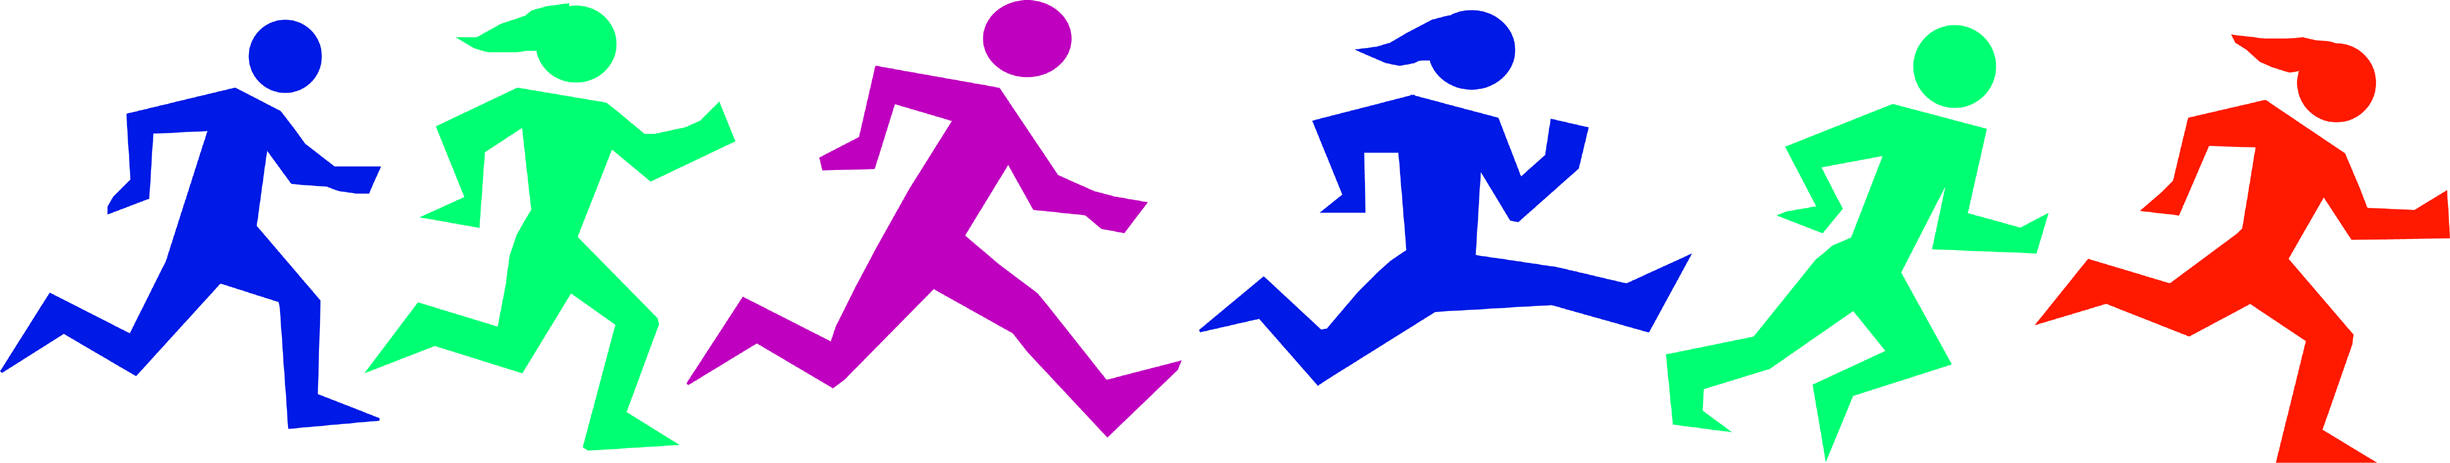 5k Run Clipart.